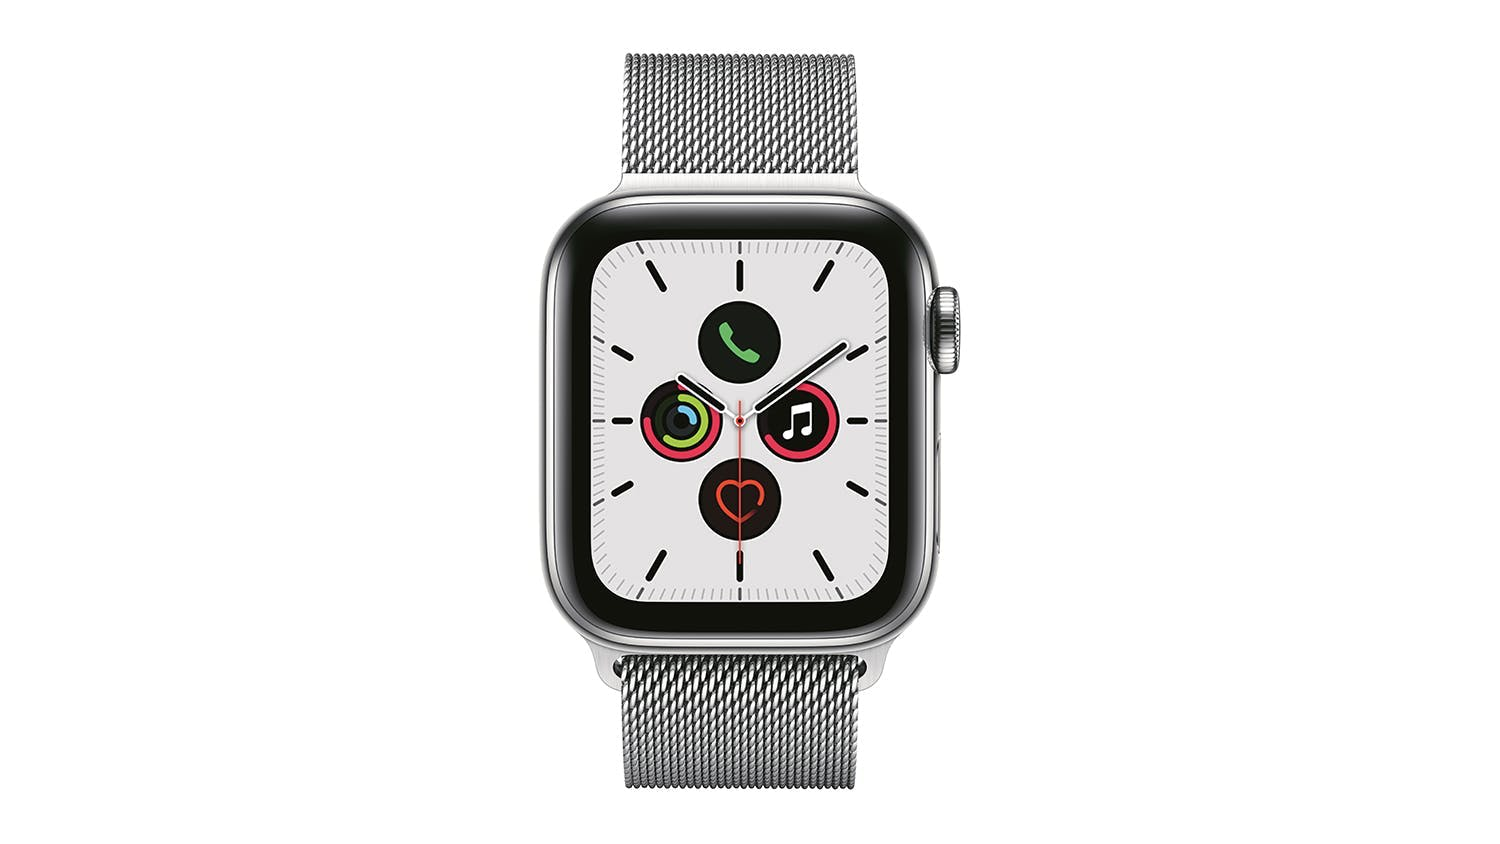 Apple Watch Series 5 (GPS+Cellular) 44mm Silver Stainless Steel + Silver Milanese Loop